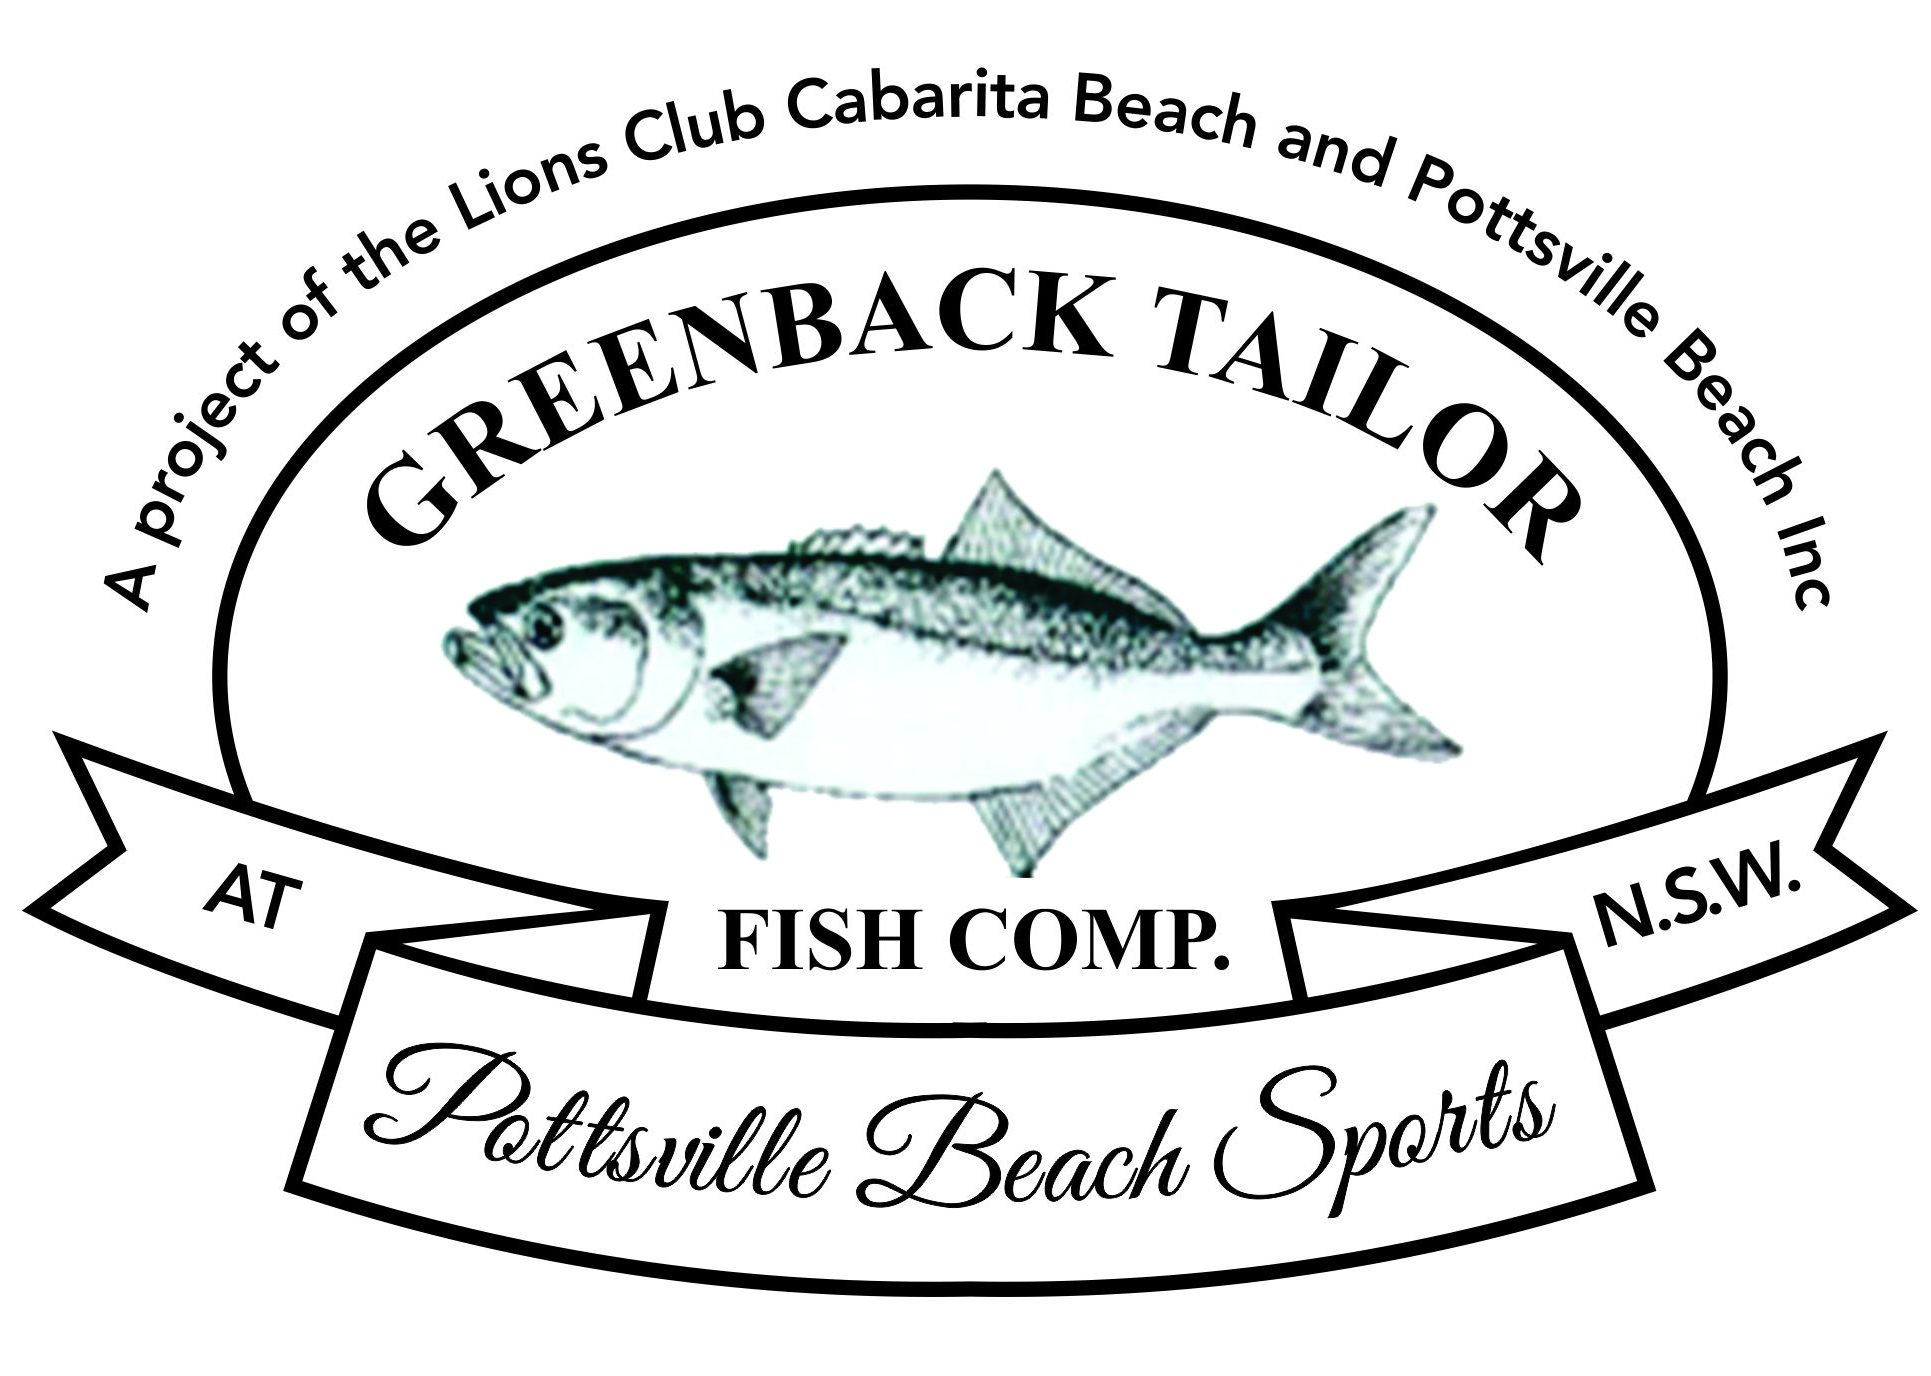 Lions 'Pottsville Beach Sports Greenback Fishing Comp.'